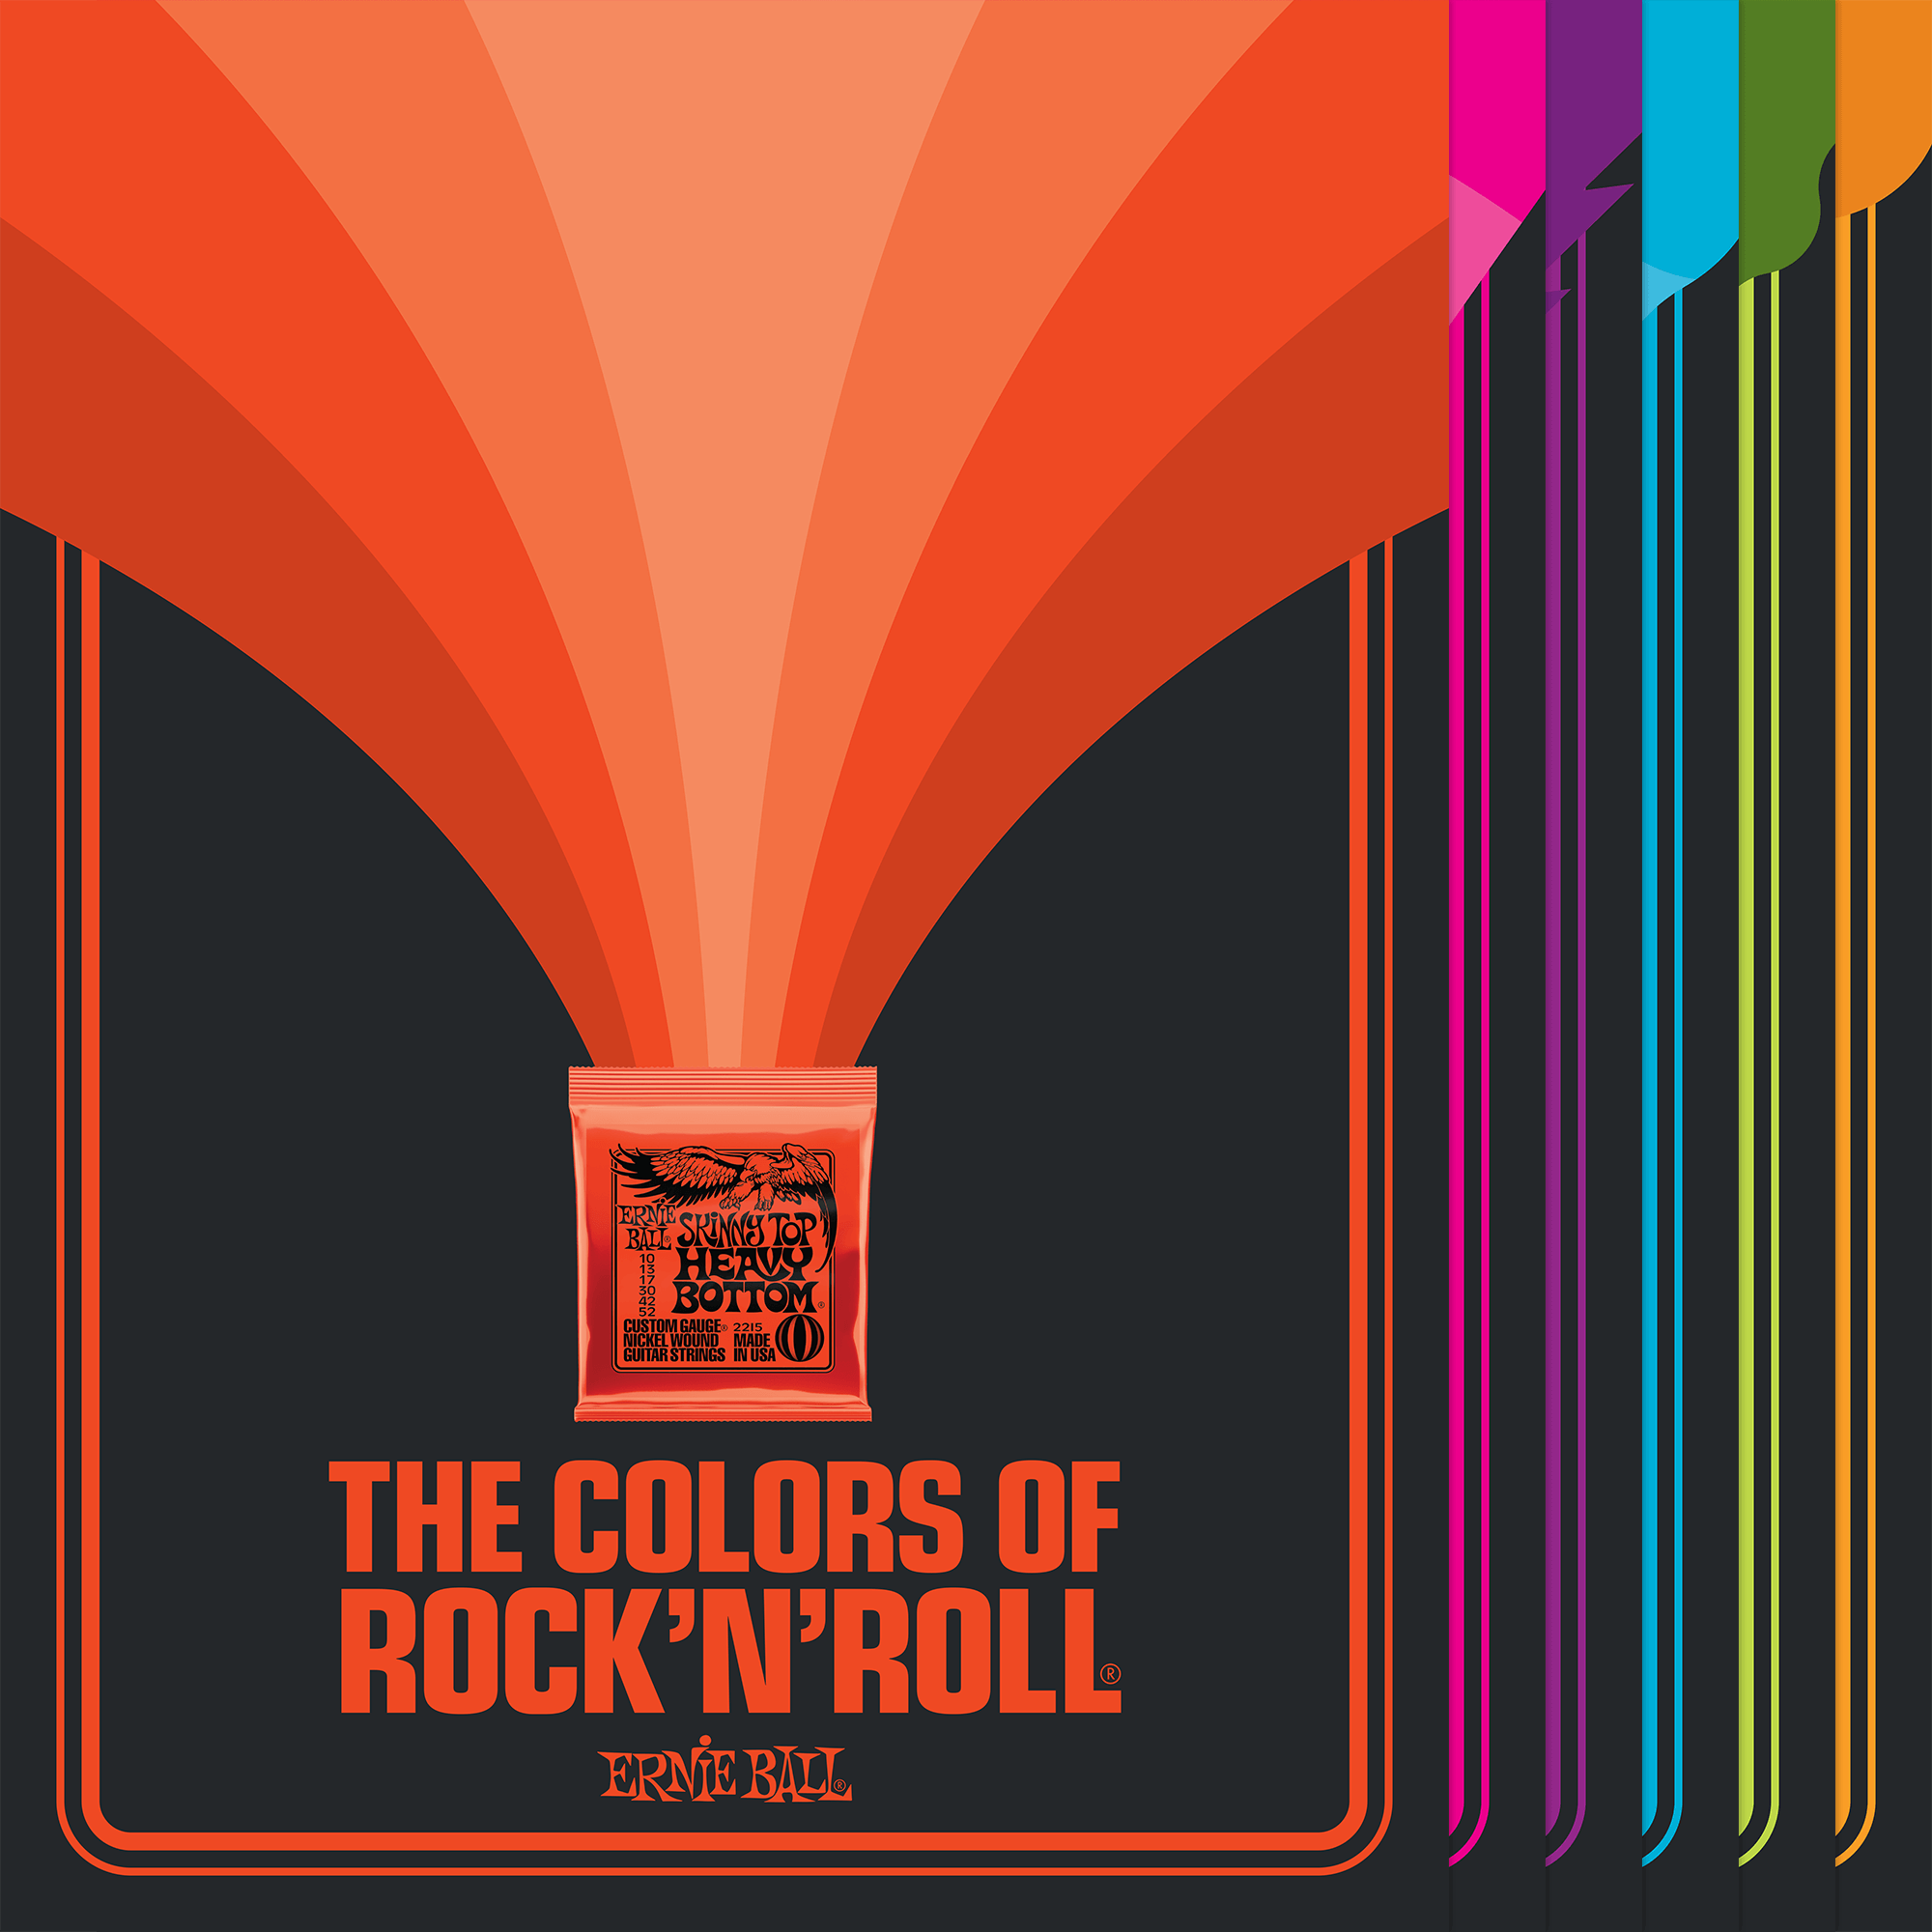 colors of rock n roll posters ernie ball